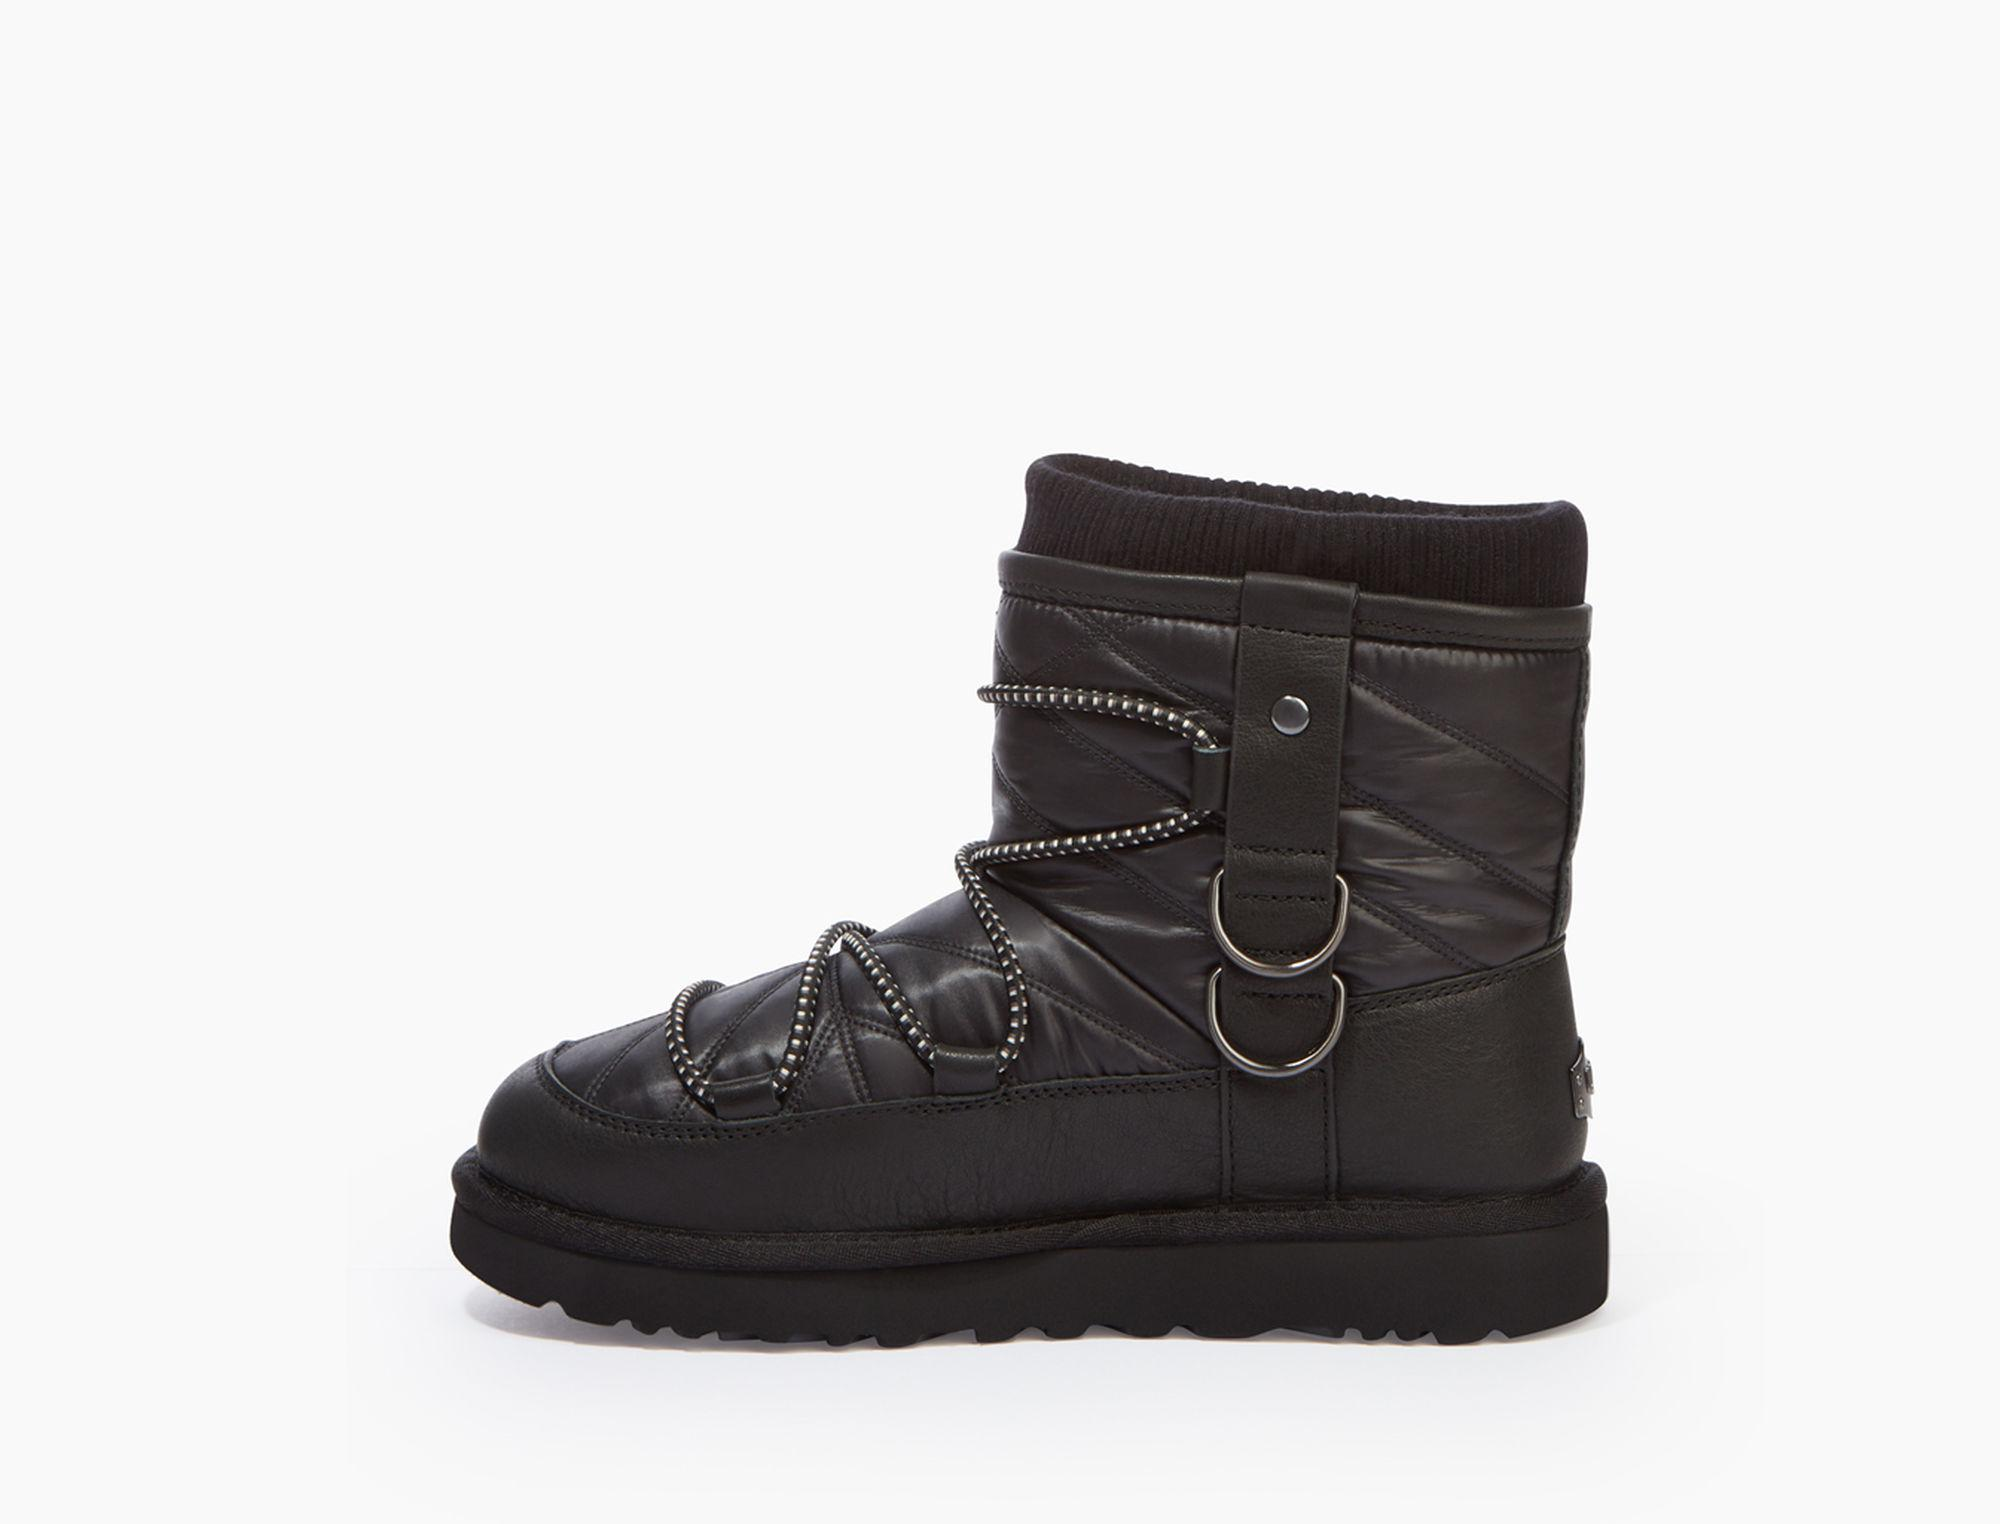 Puff Momma Classic Short Boot in Black